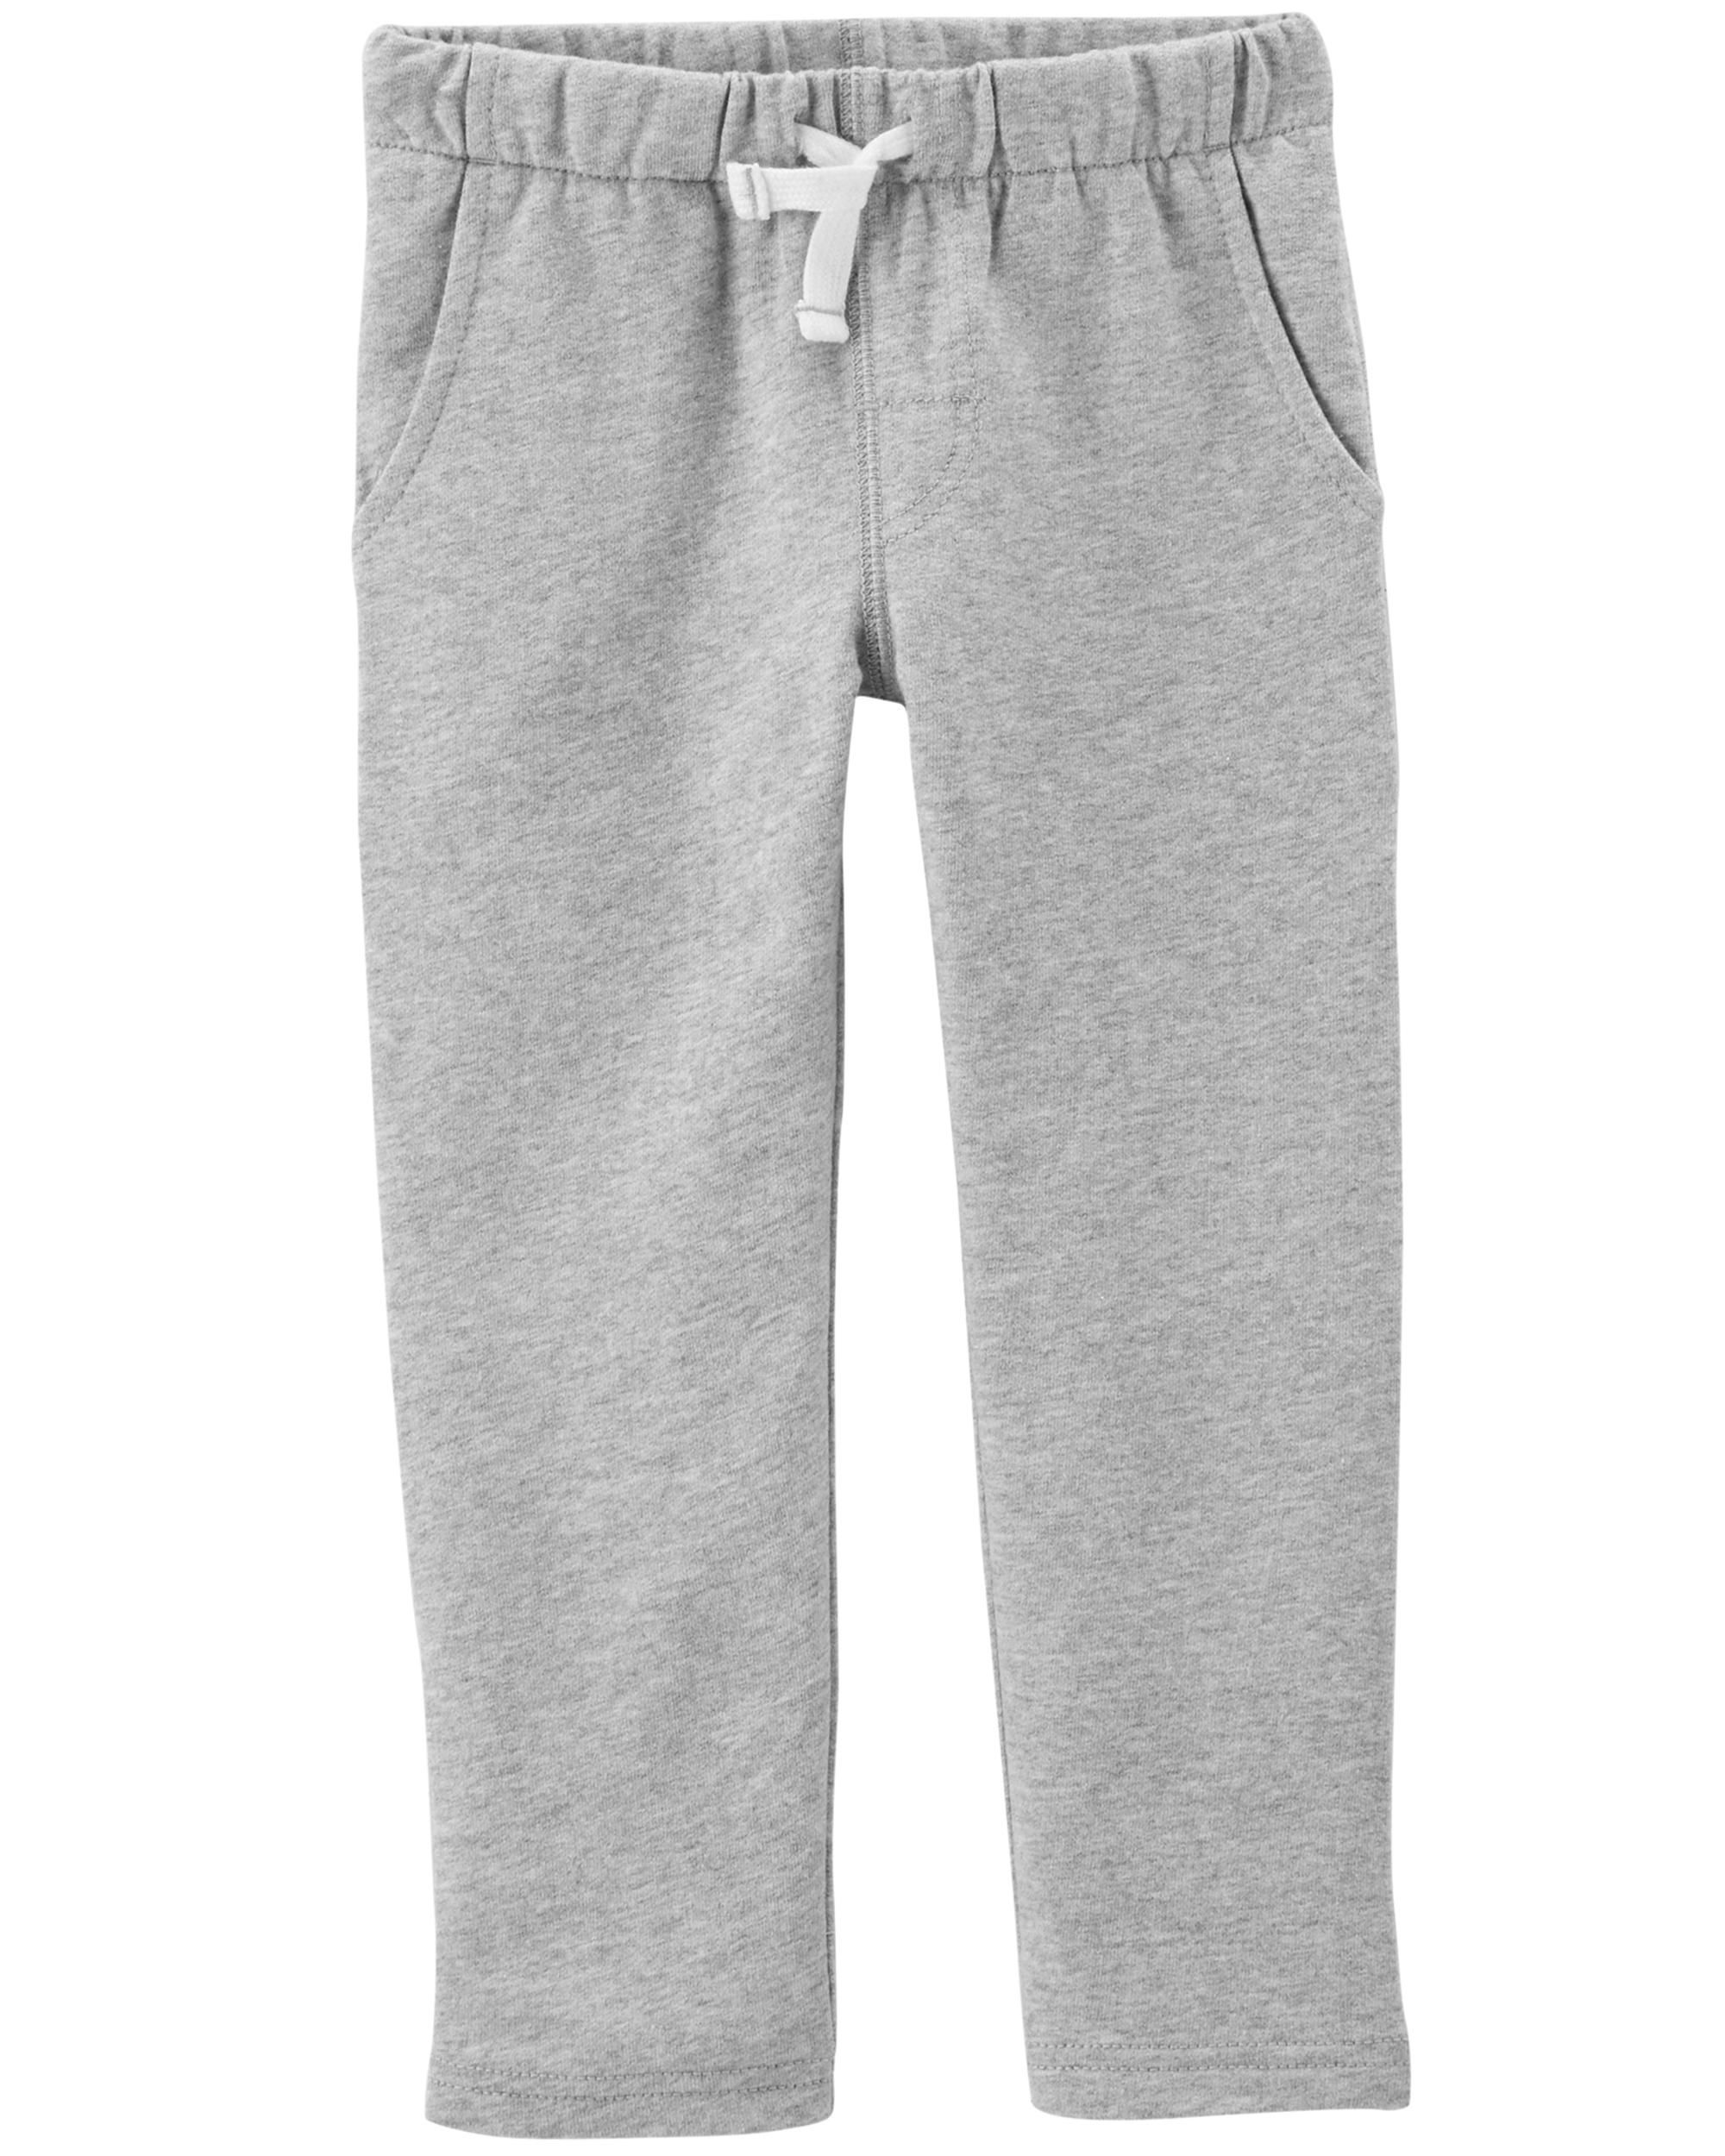 83286907e4ca1 Pull-On French Terry Pants | carters | Toddler pants, Pants, Carters ...